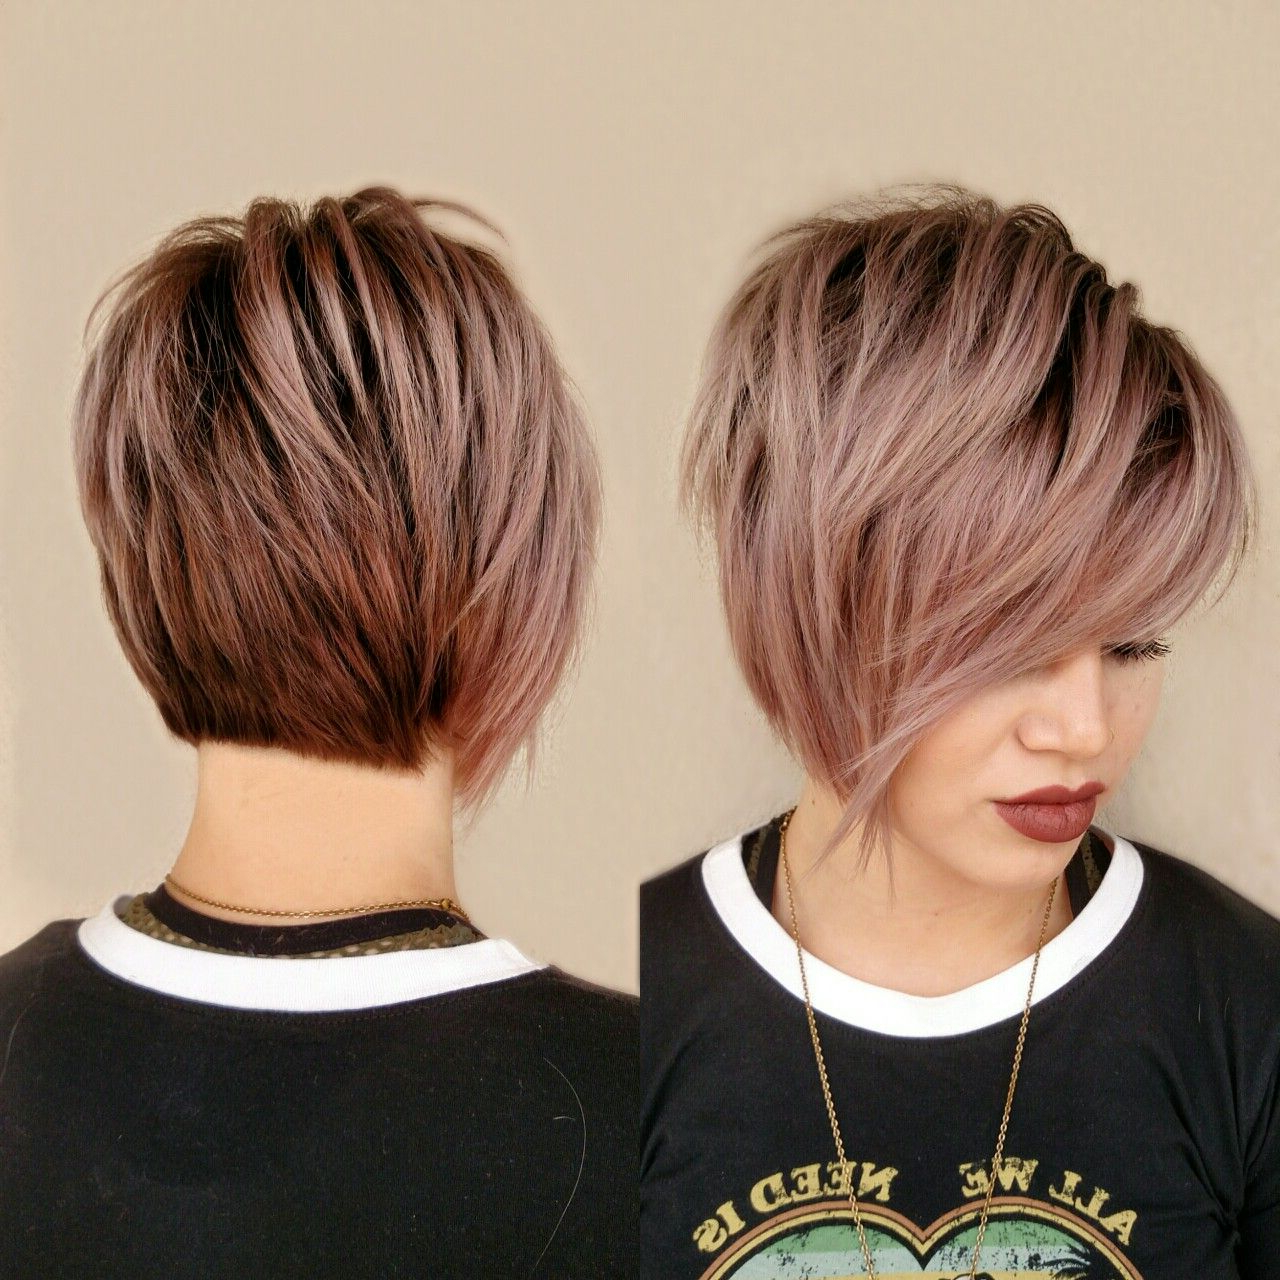 Pin On Short Hairstyle Regarding Most Current Edgy Textured Pixie Haircuts With Rose Gold Color (Gallery 2 of 20)